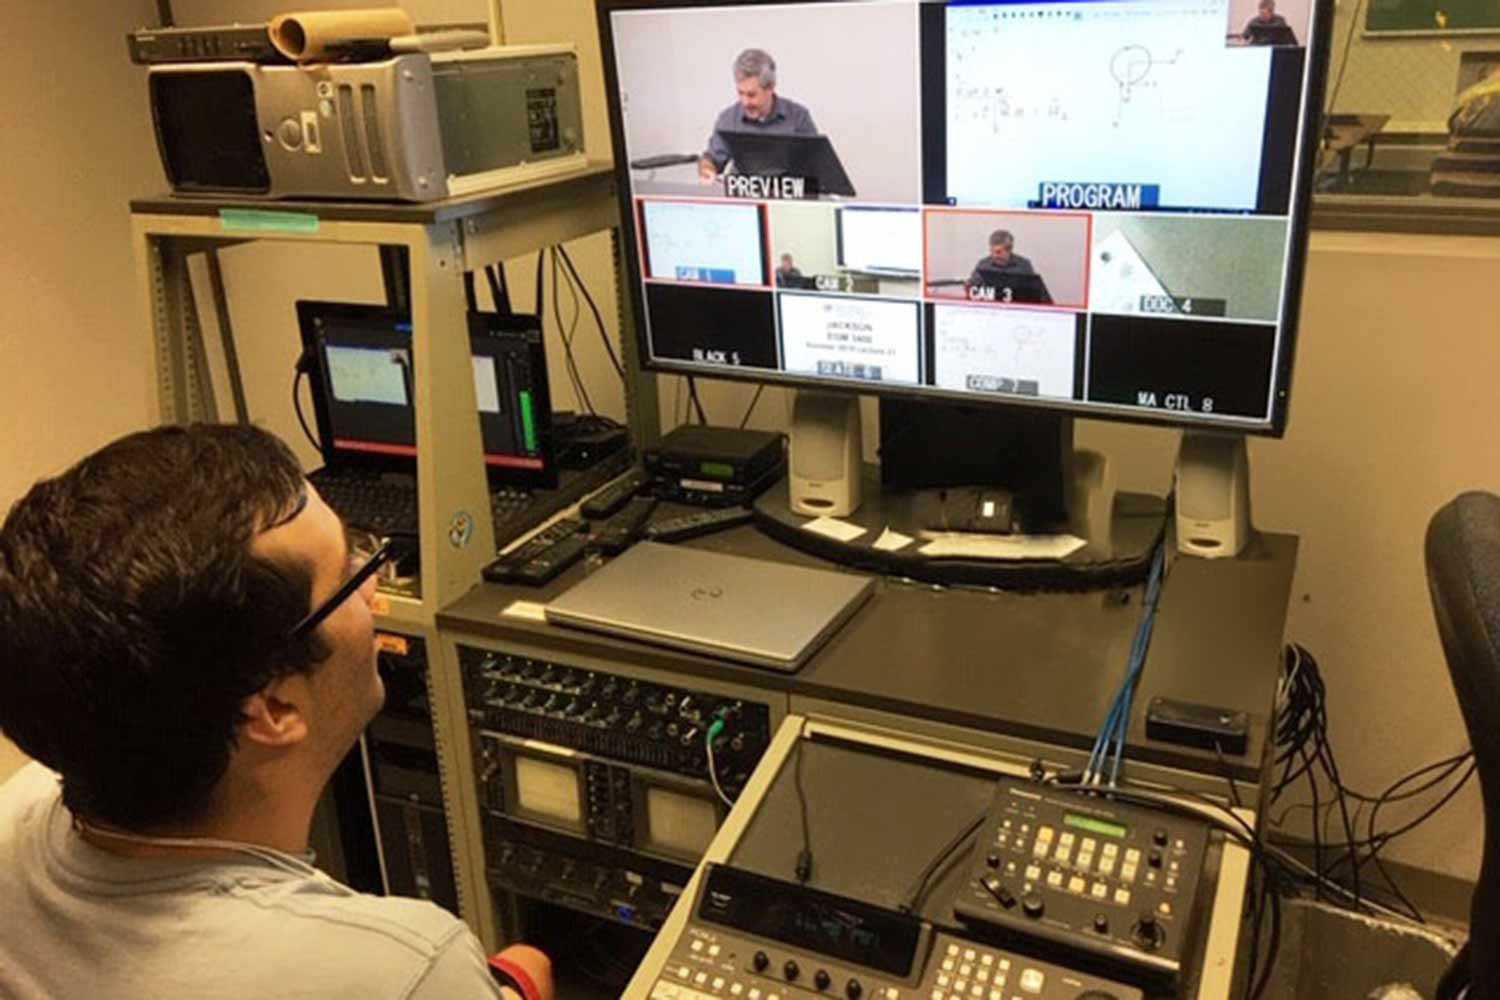 Mediasite Video Audio recording to classrooms at University of Florida